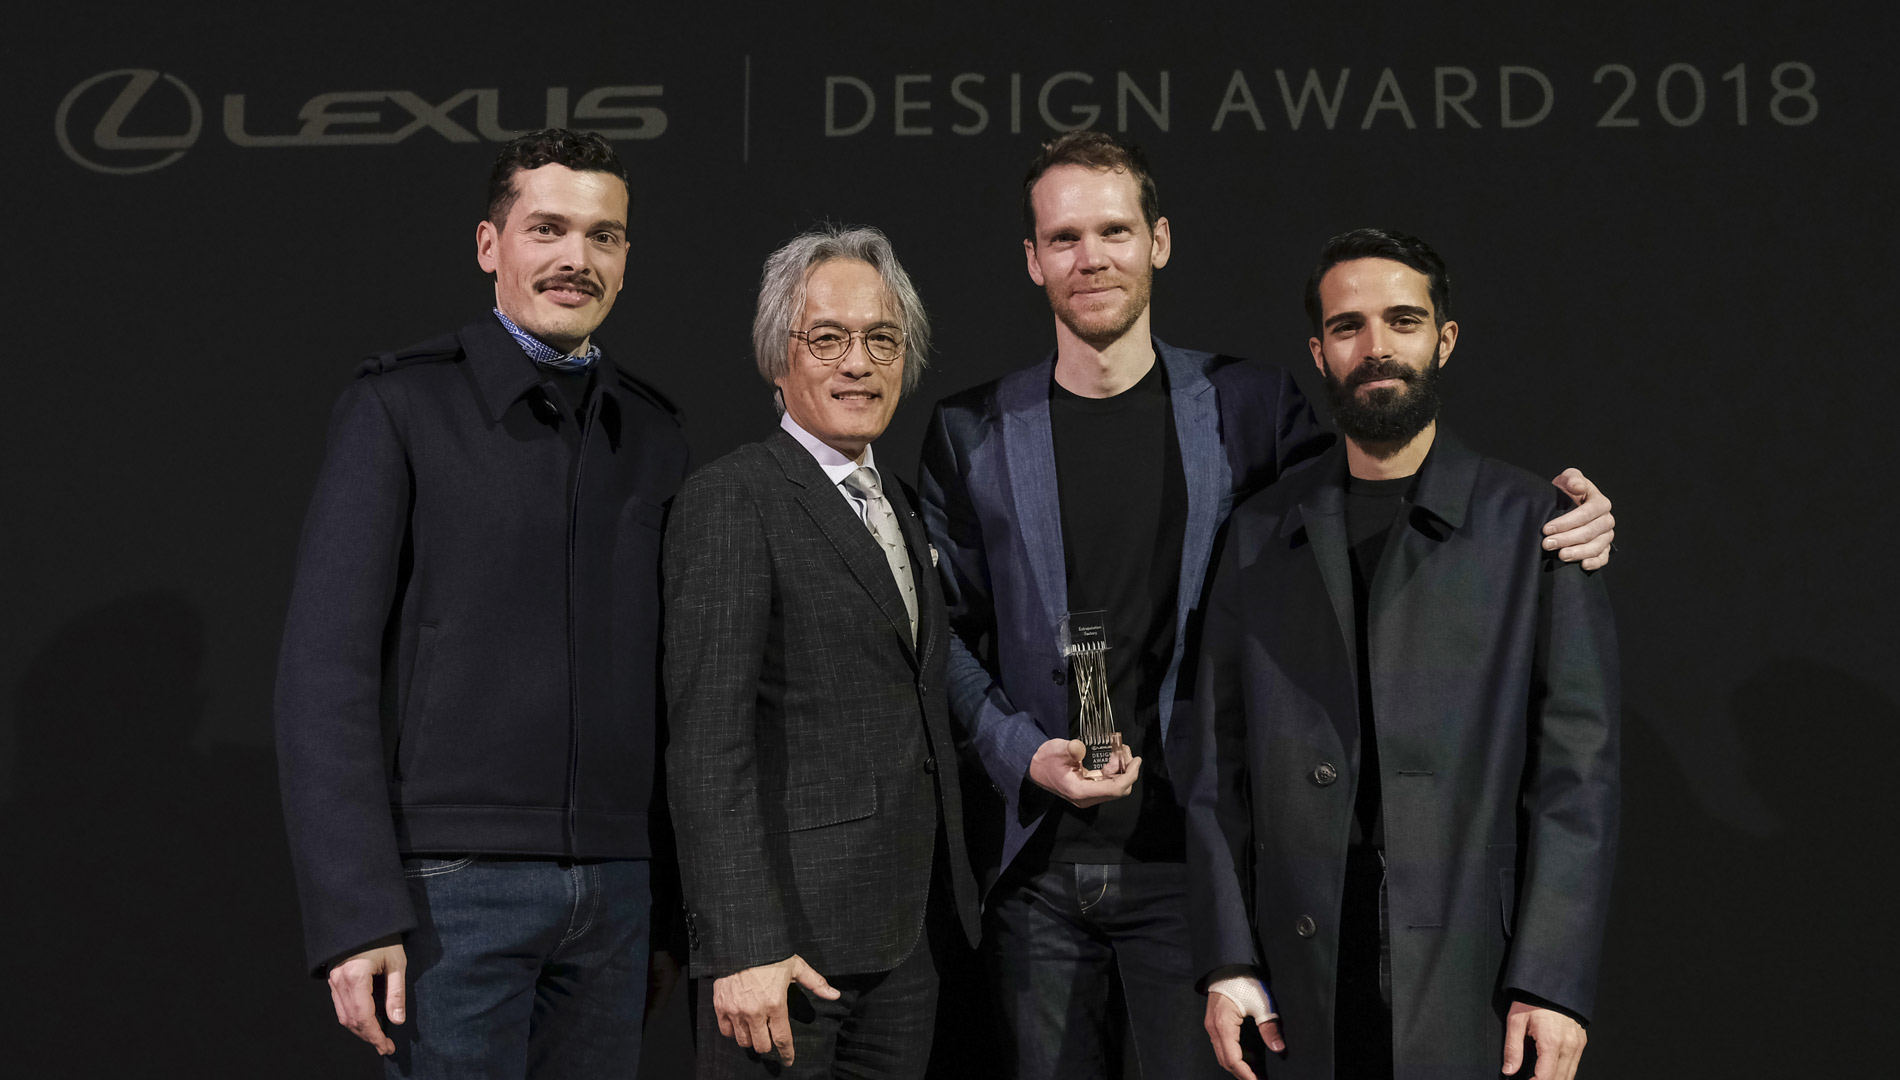 lexus design award 2018 hero